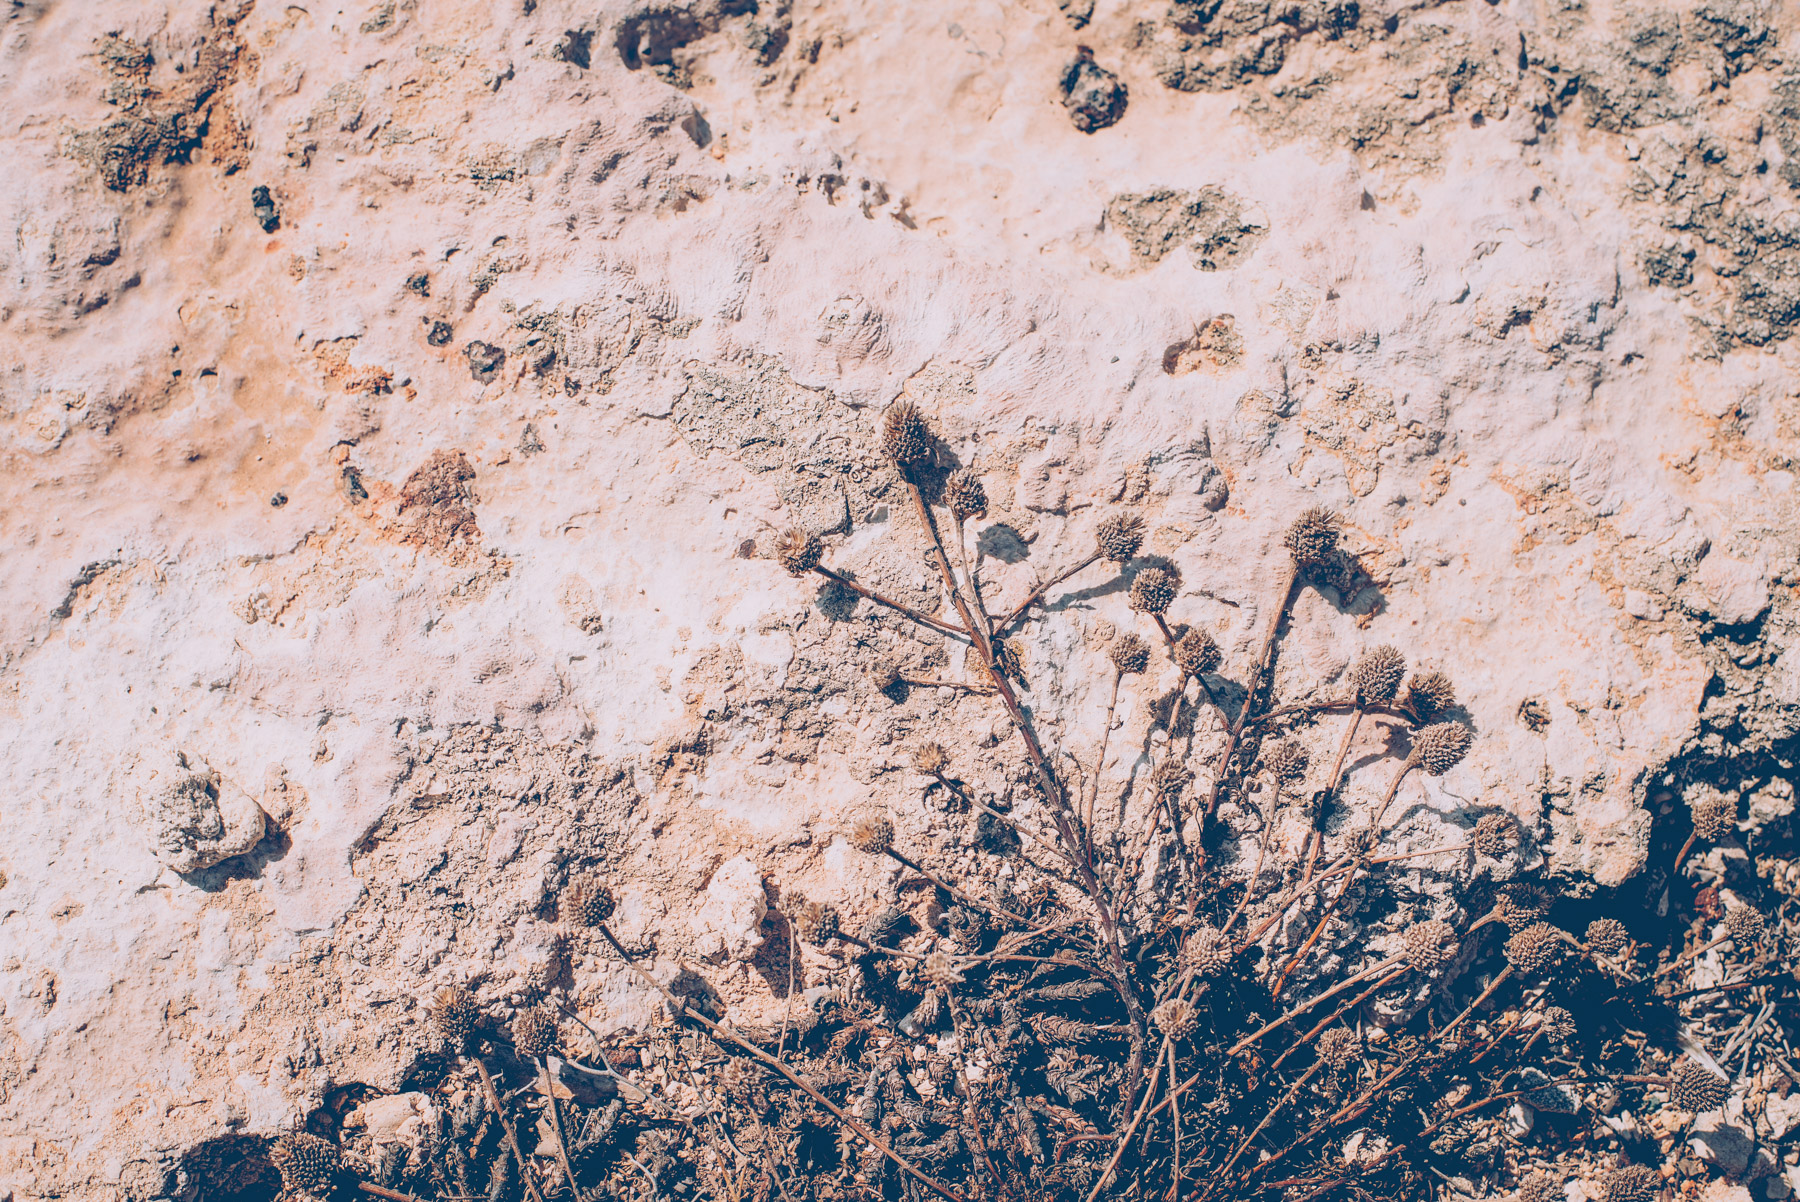 detail of the rounded plants and greenery that grows on the rocks of the island of lampedusa